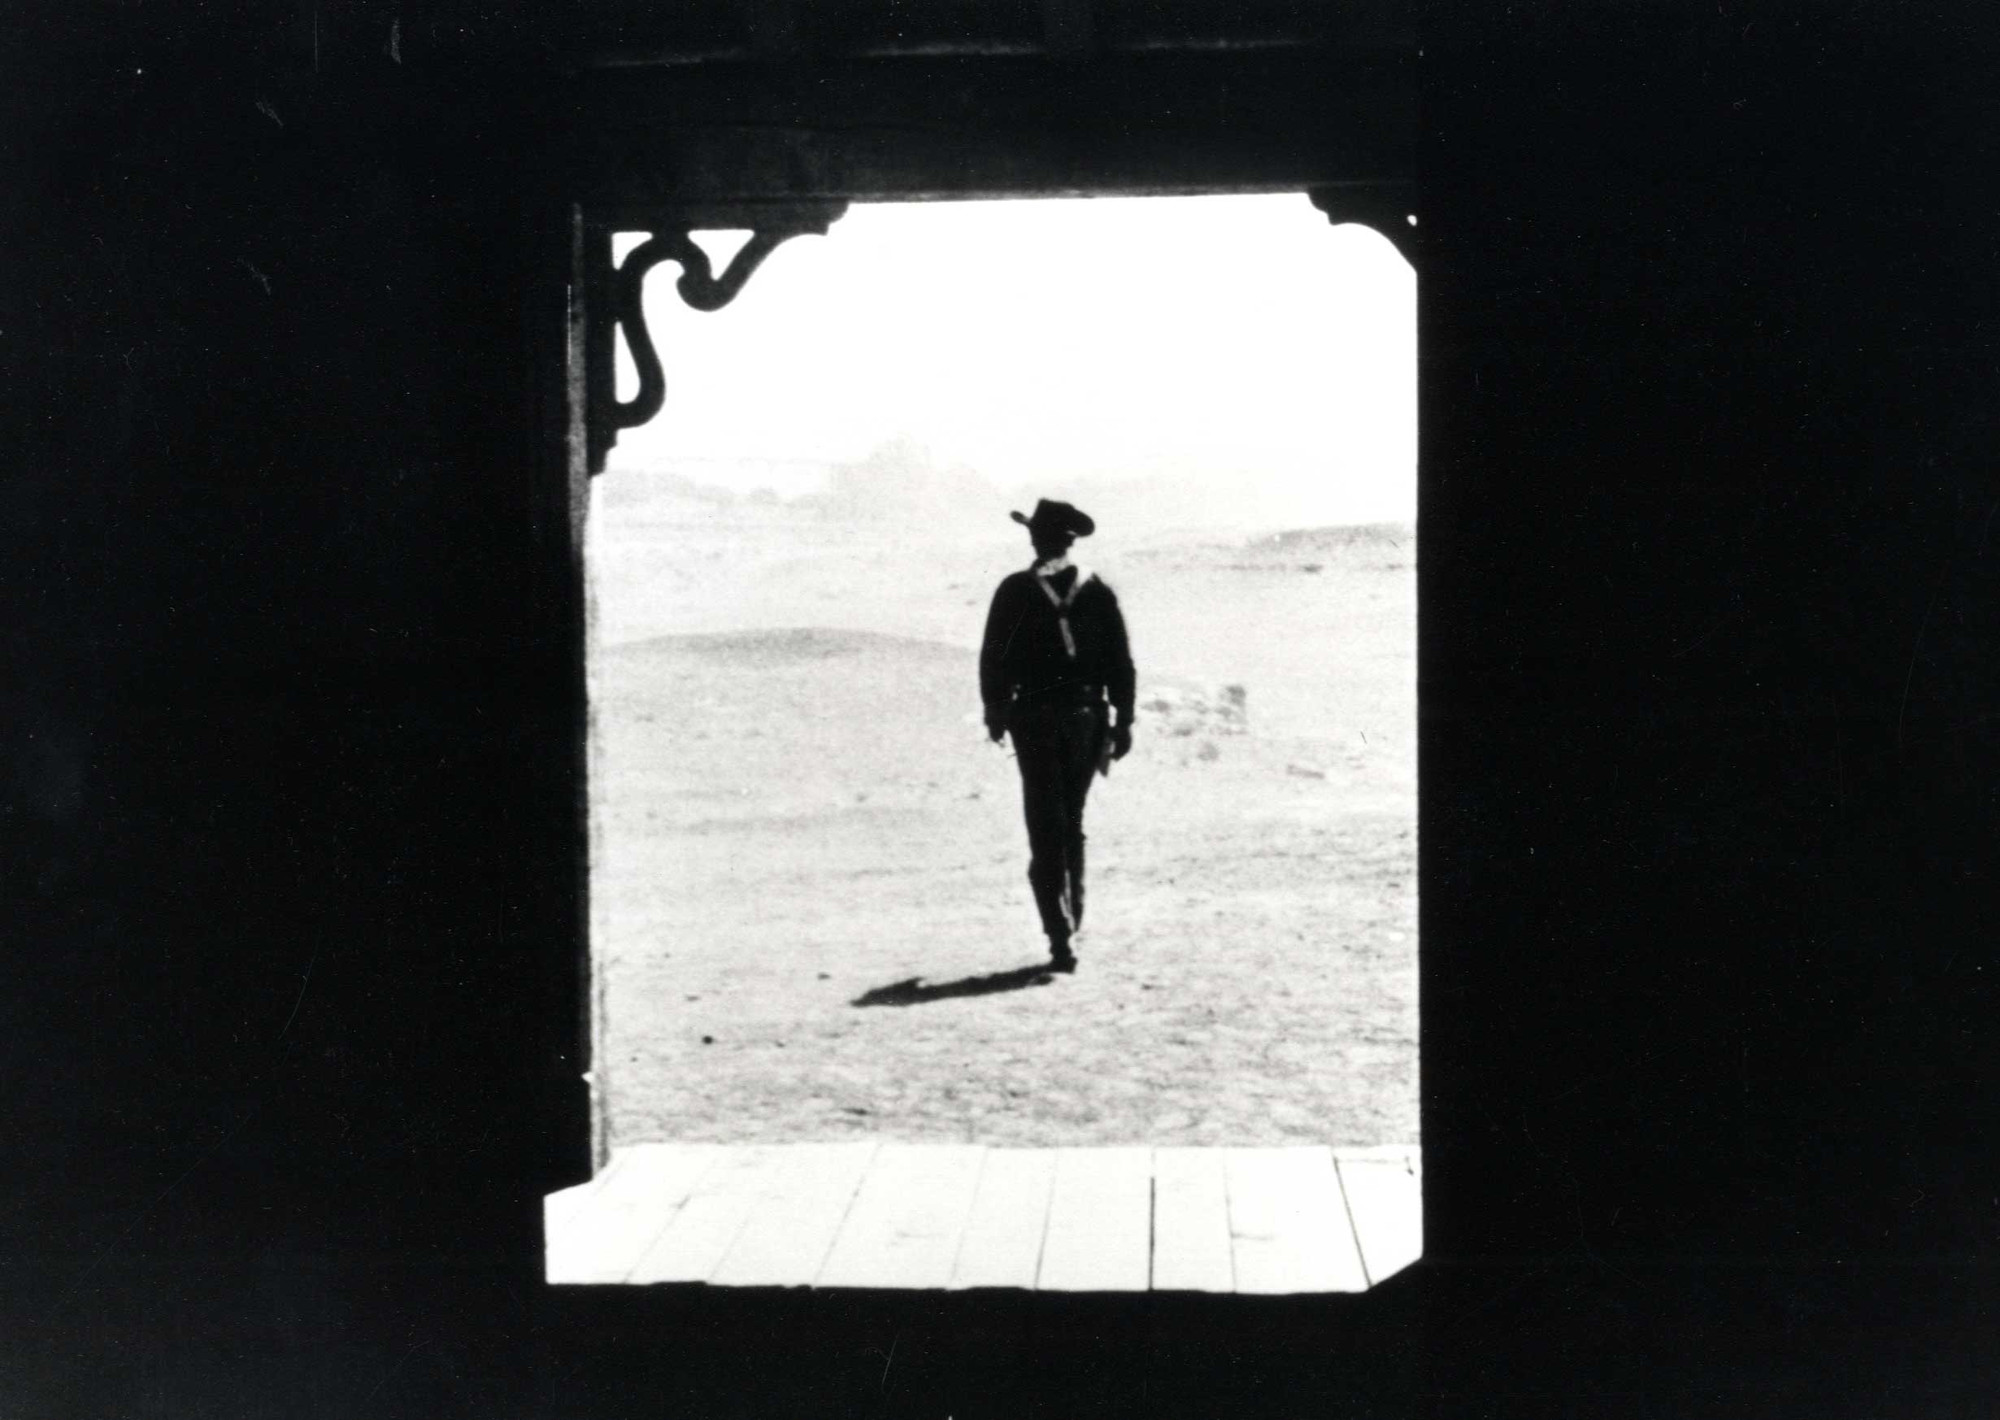 essay on the searchers John ford's iconic western the searchers is one of the most influential and debated films ever produced the impression it made on the generation of film writers and directors who would come of age in the '60s, '70s, and '80s is immeasurable.